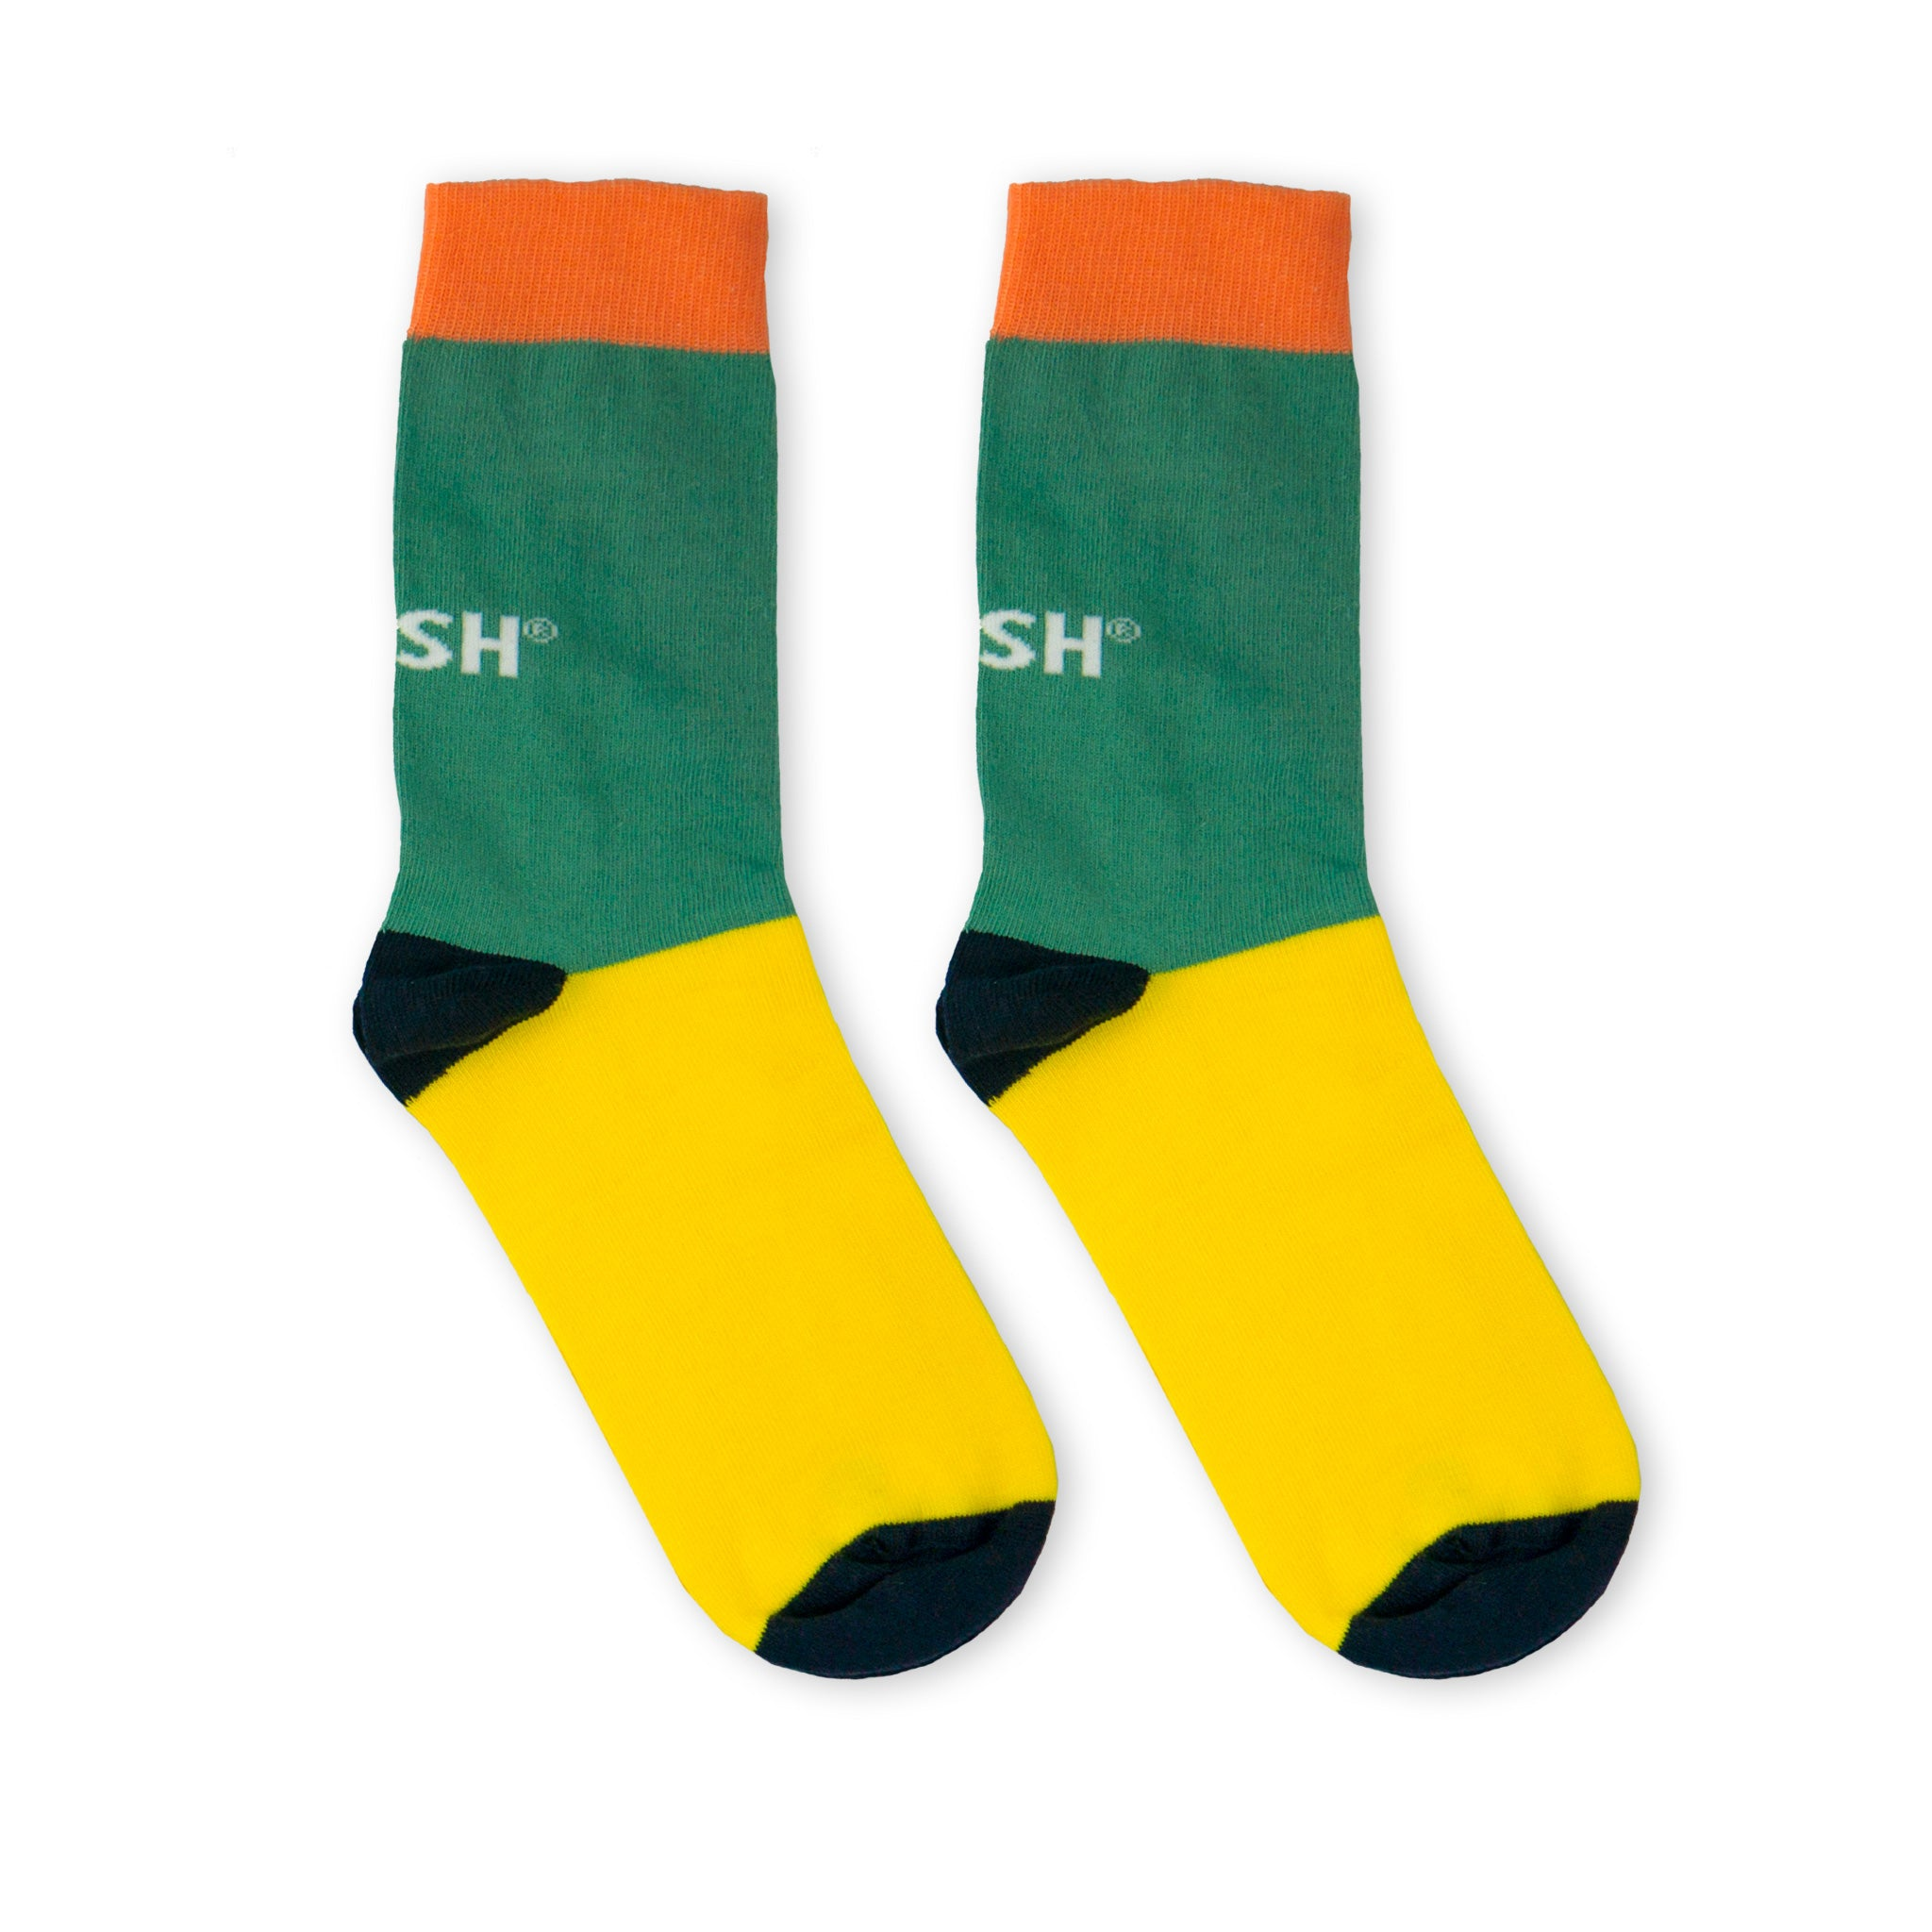 Single Socks (turquoise+yellow)